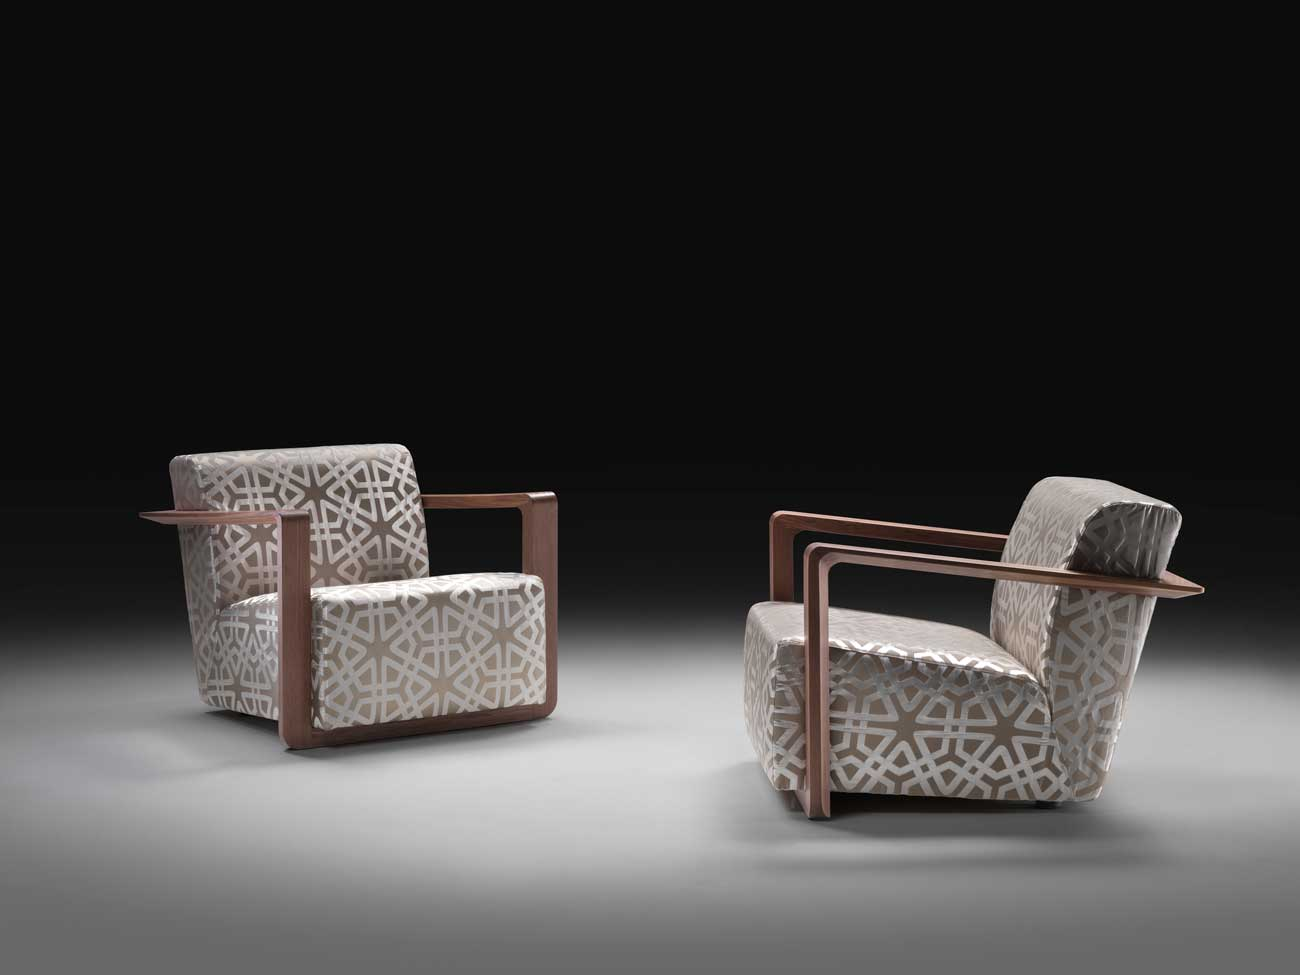 Isotta chair by Klab contemporary Italian design